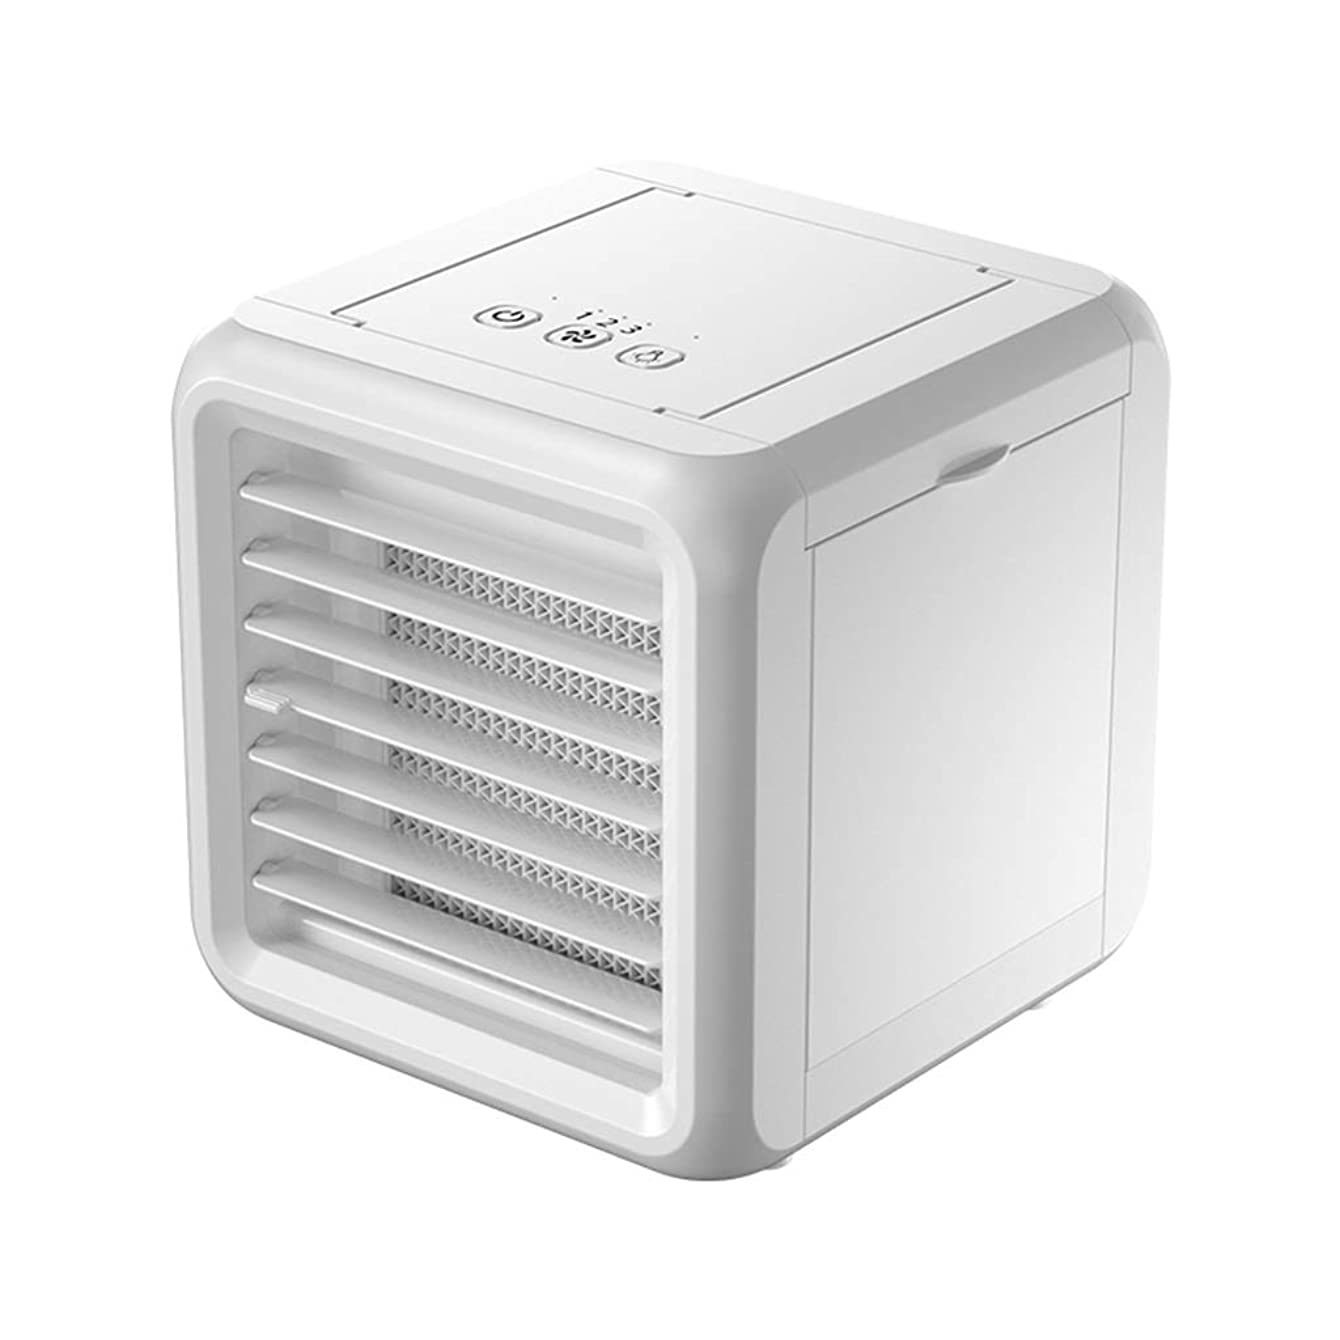 Slow Time Shop USB Mini Portable Air Conditioner, Personal Space Air Cooler 3 in 1 Humidifier, Purifier, Evaporative Cooler Desktop Cooling Fan with 3 Speeds,LED Light